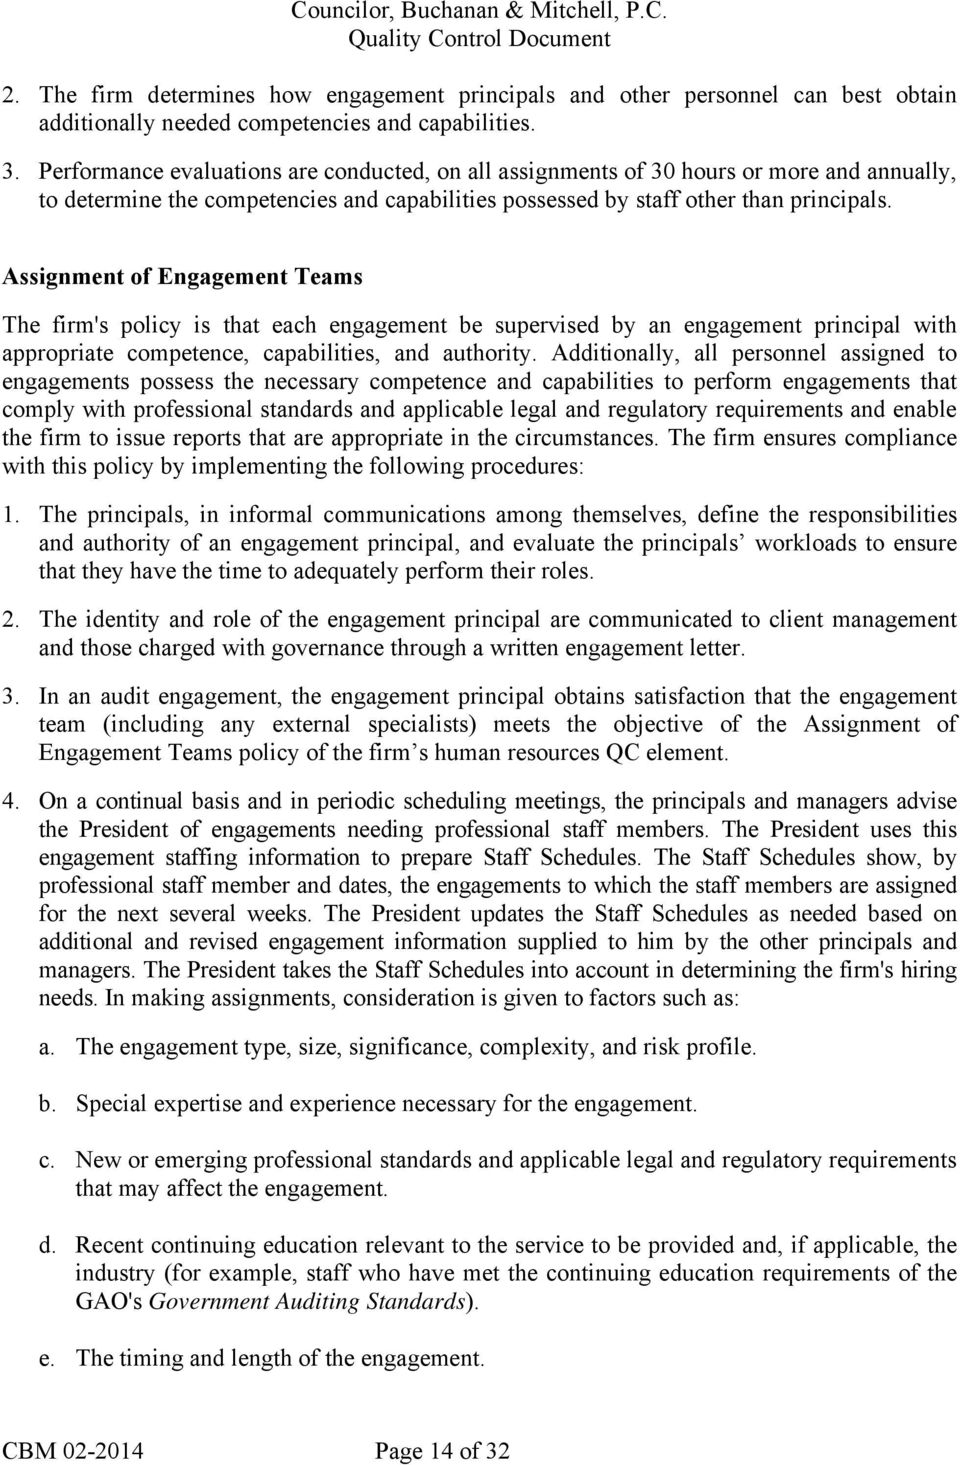 Assignment of Engagement Teams The firm's policy is that each engagement be supervised by an engagement principal with appropriate competence, capabilities, and authority.